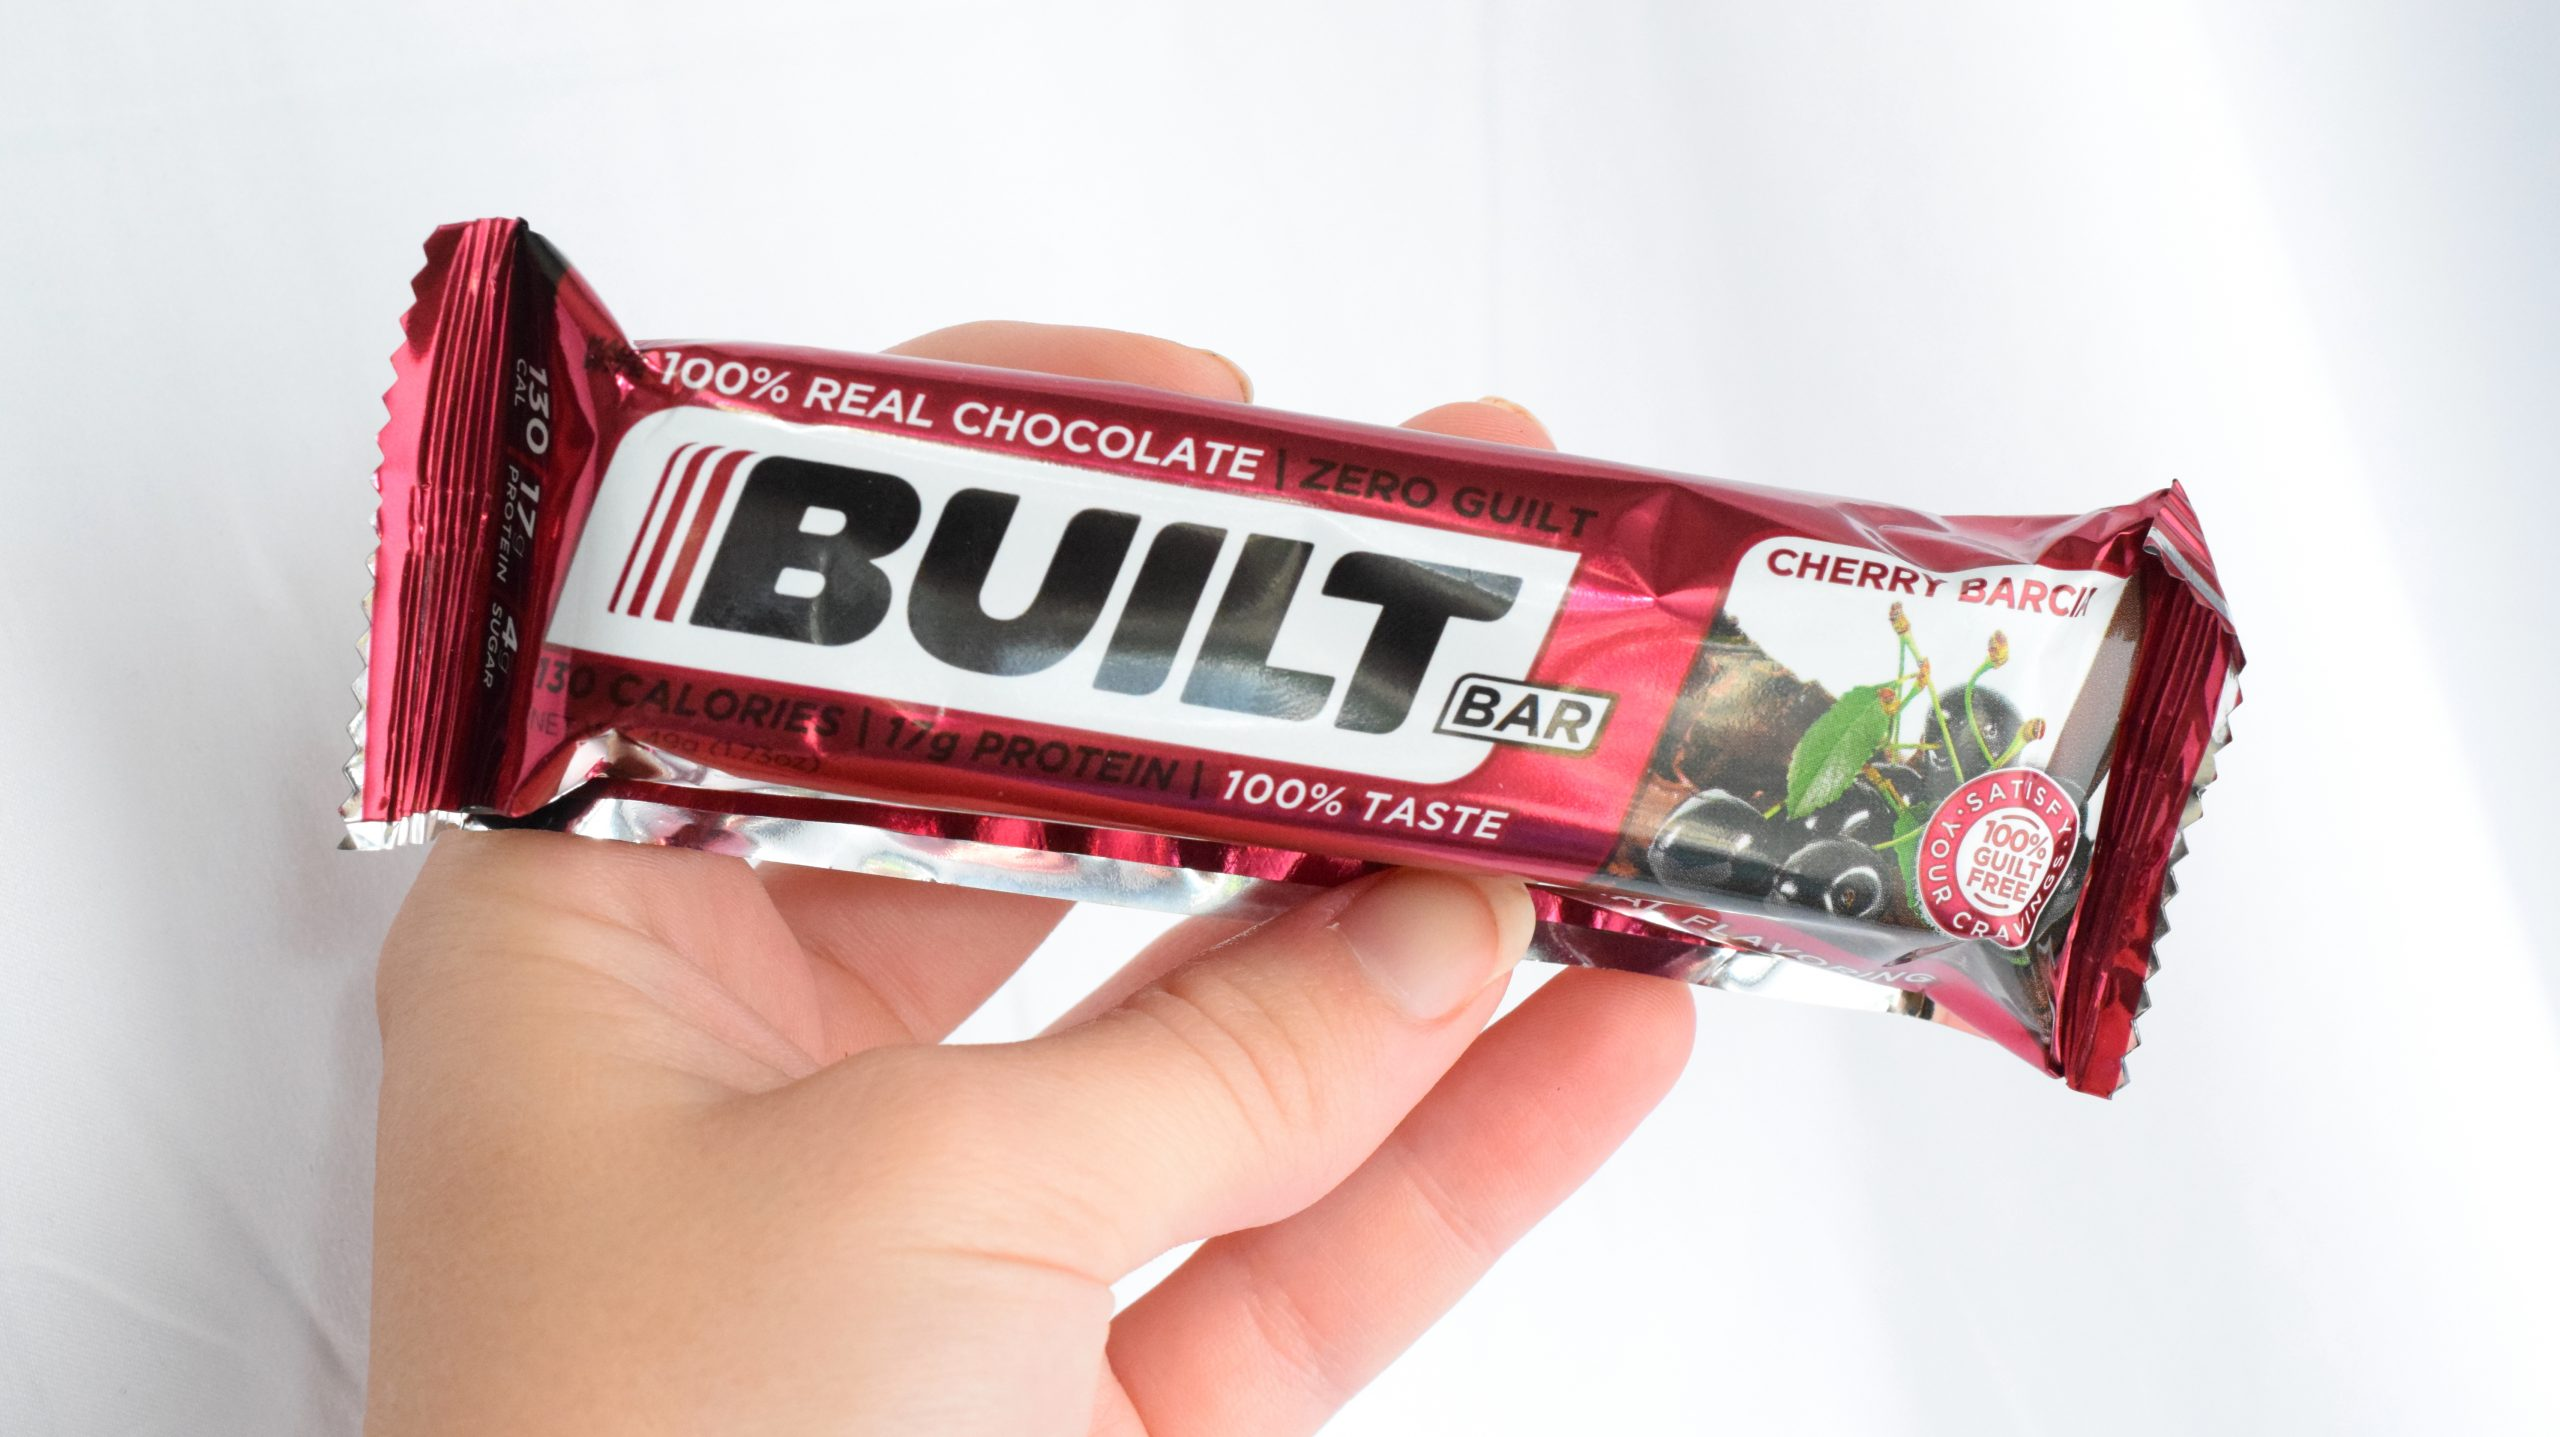 cherry Barcia built bar review